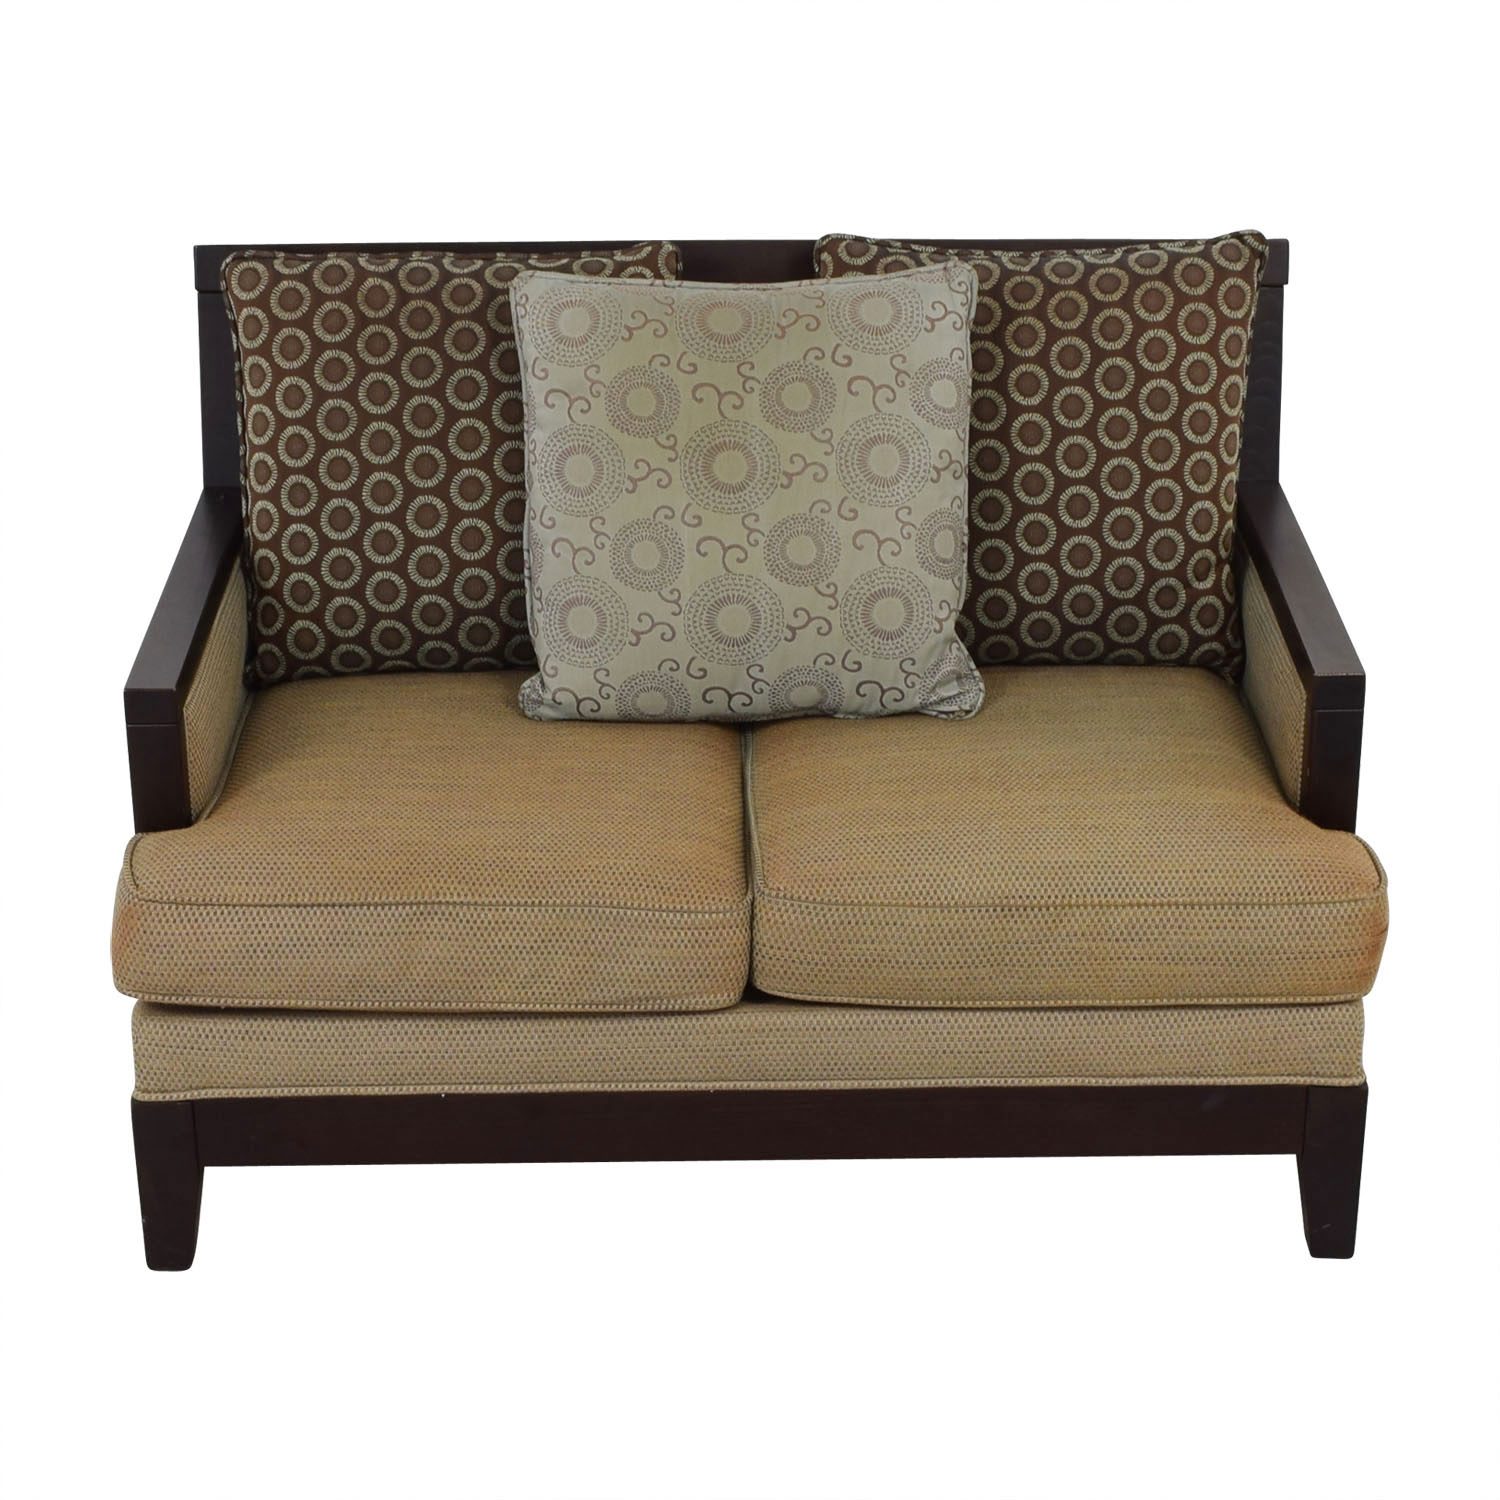 shop Raymour & Flanigan Raymour & Flanigan Wooden Loveseat online